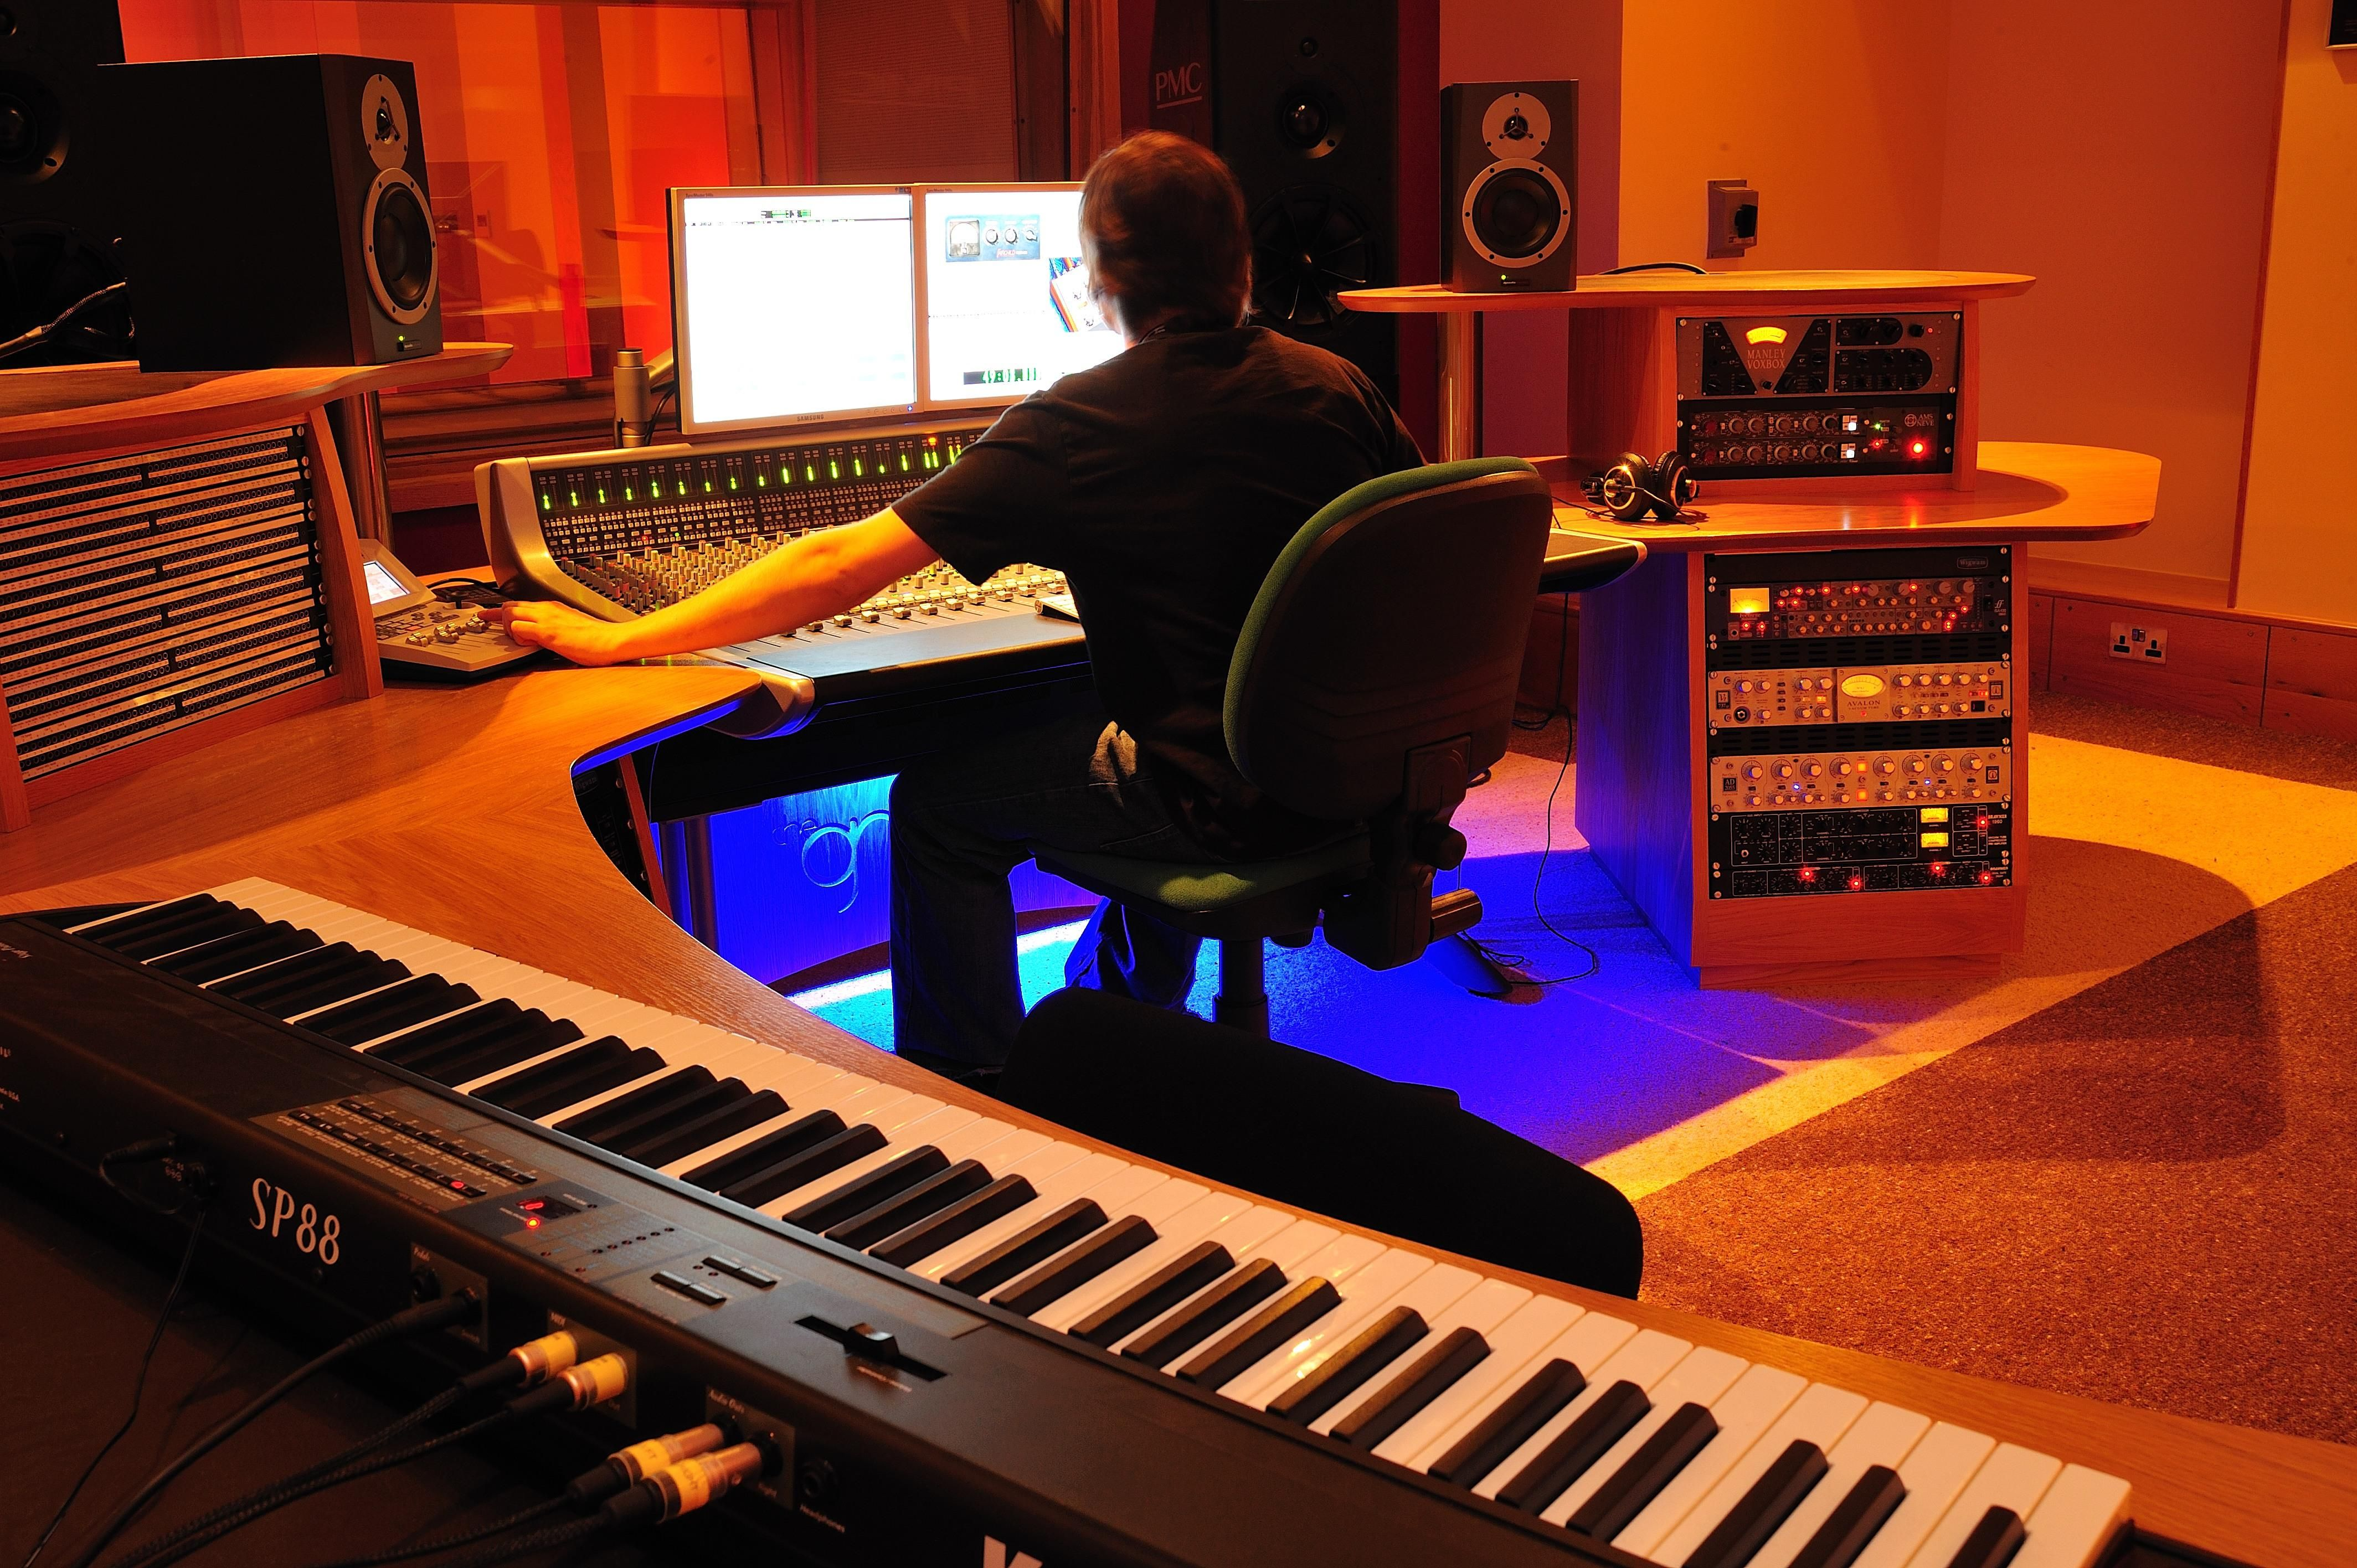 Pleasant 17 Best Images About Music Studio On Pinterest Diffusers Largest Home Design Picture Inspirations Pitcheantrous